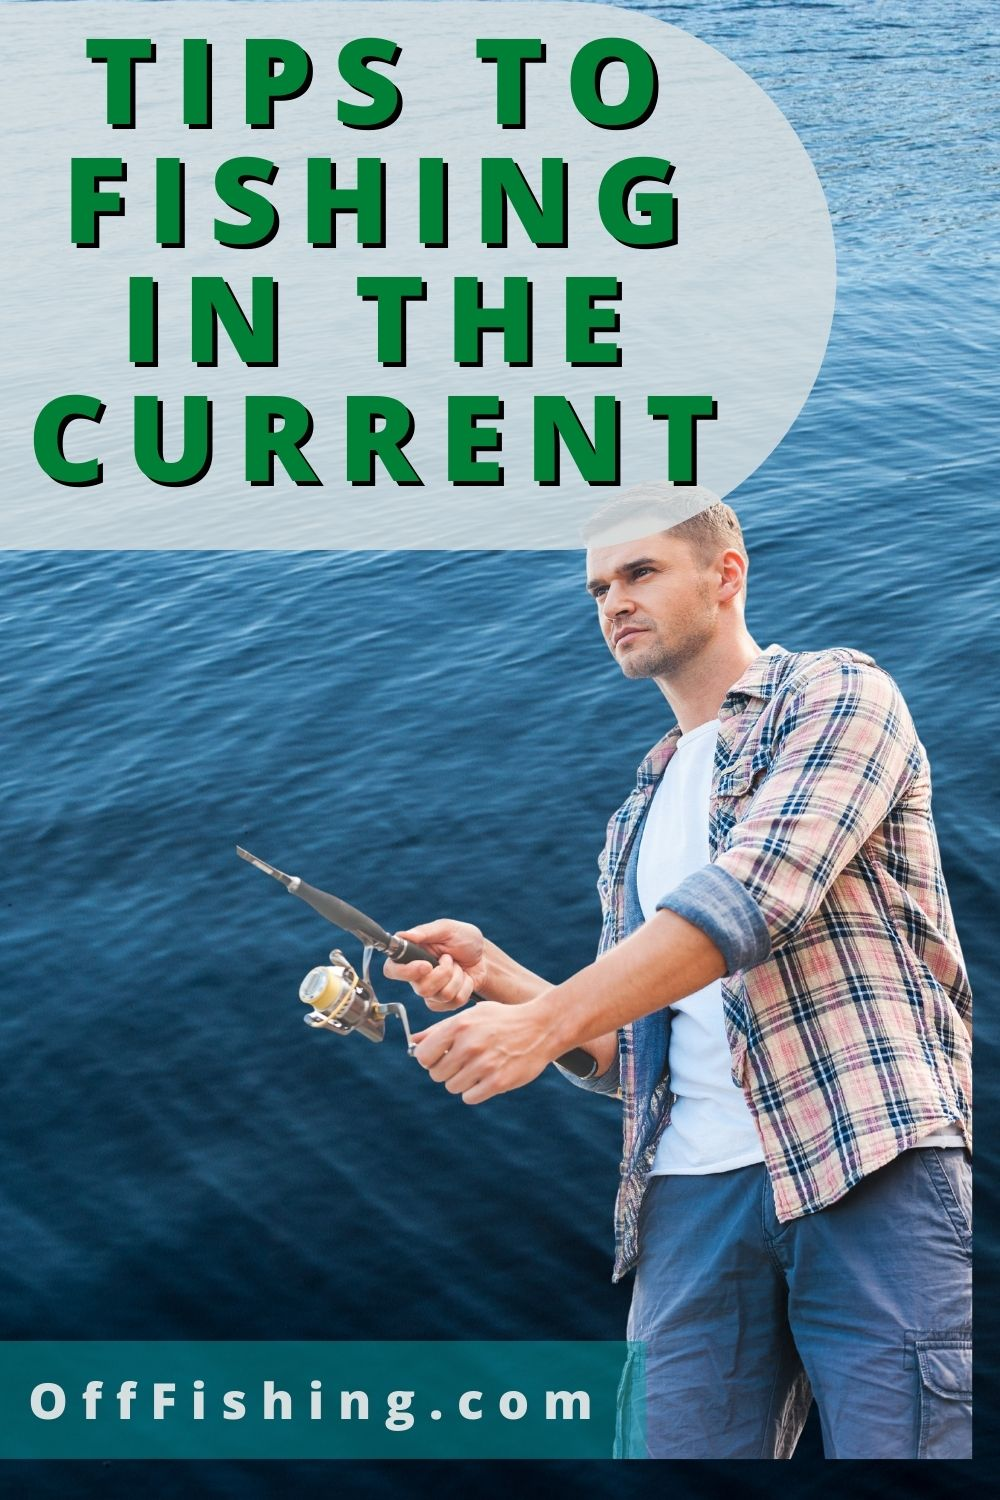 Tips To Fishing in the Current Off Fishing Pin